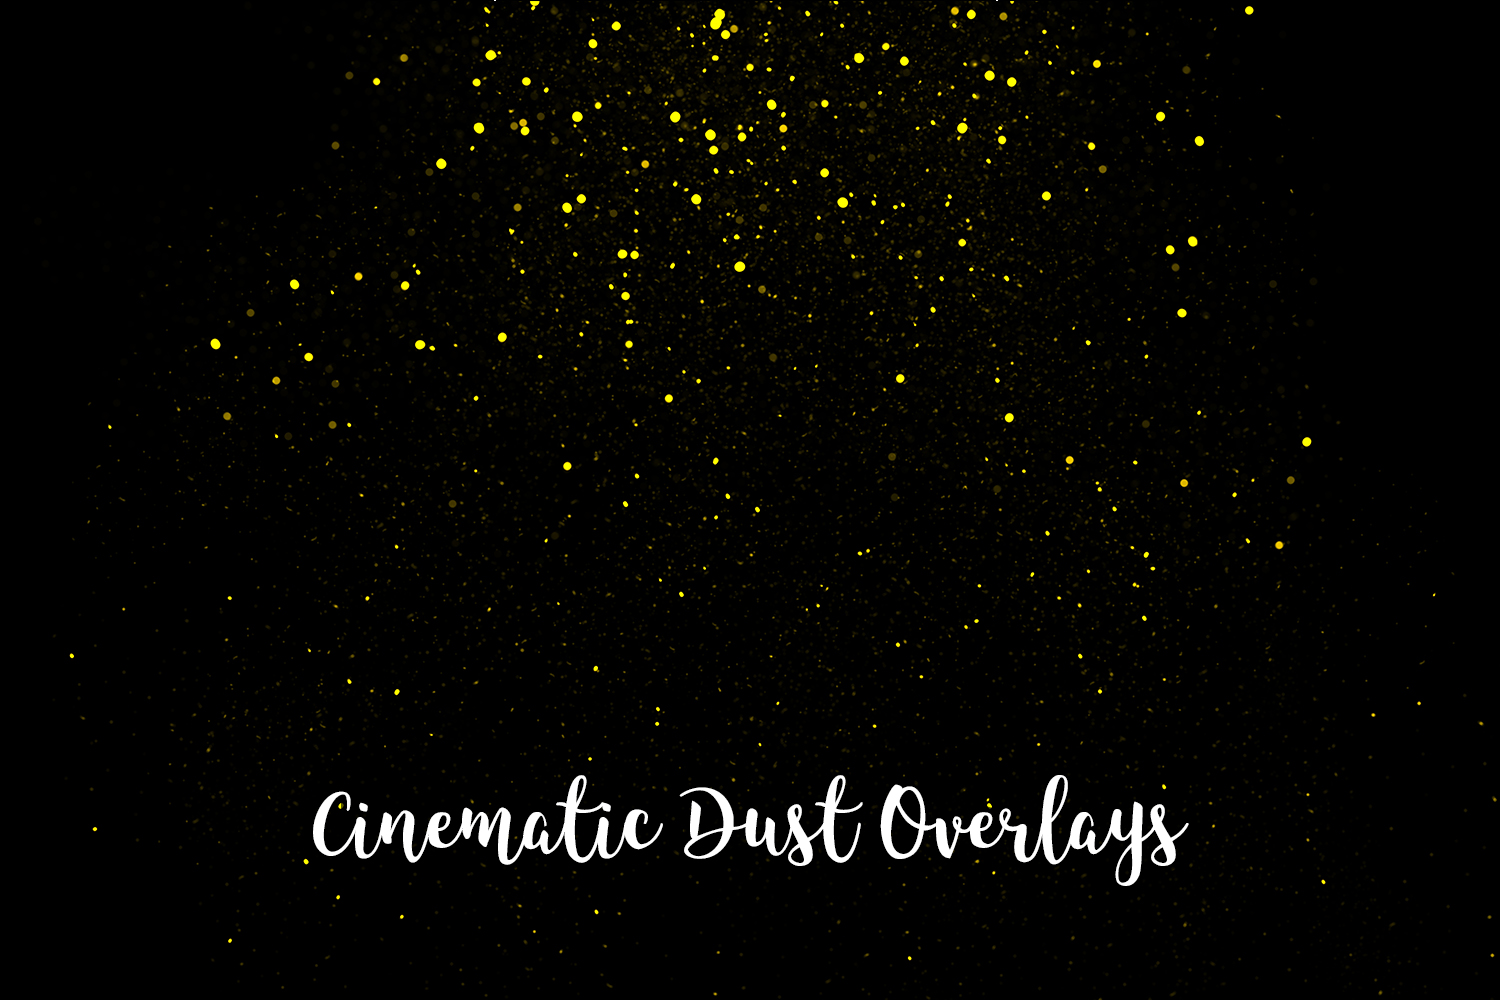 Cinematic Dust Photo Overlays, Bokeh Light Effects example image 8